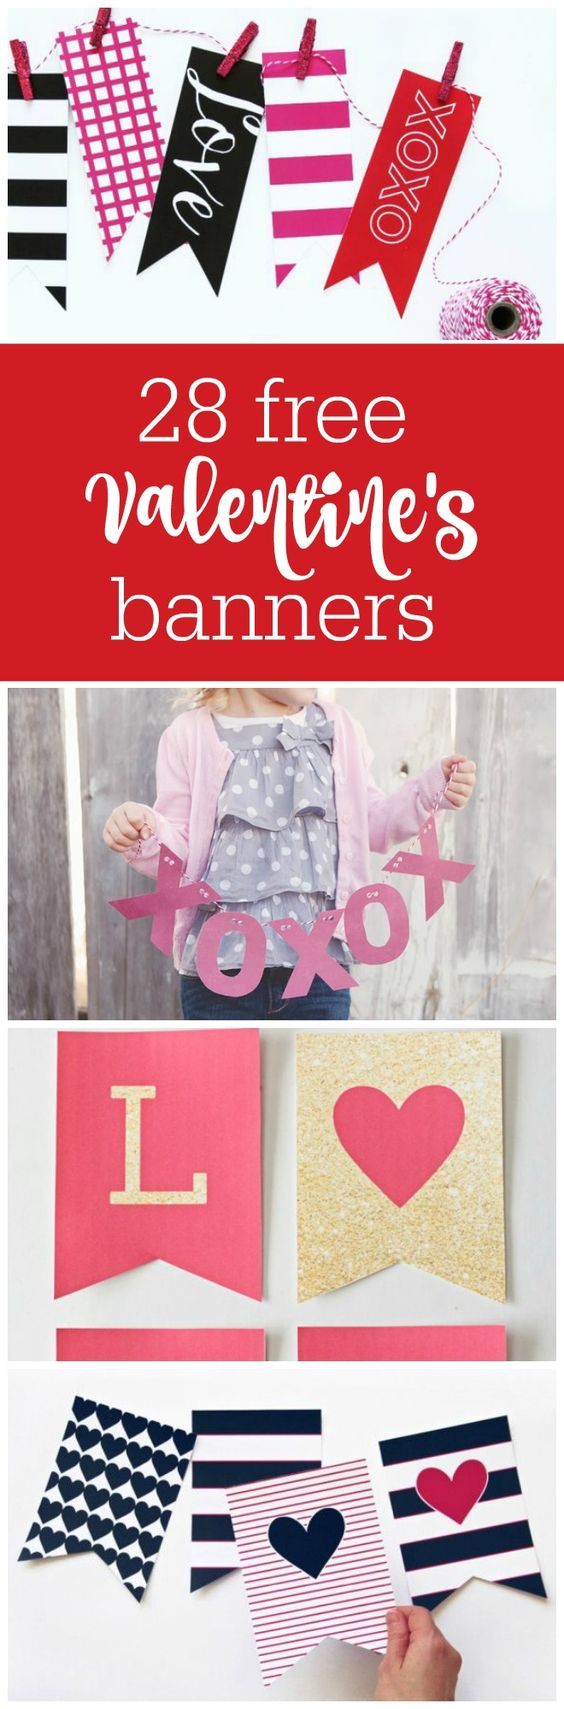 28 Free Valentine's Printable Banners via The Party Teacher | These are wonderful ideas for Valentine's Day decor! #valentines #freeprintablevalentines #valentinesprintables #freevalentinesdaycards #valentinesdaypartyprintables #valentinesdayparty